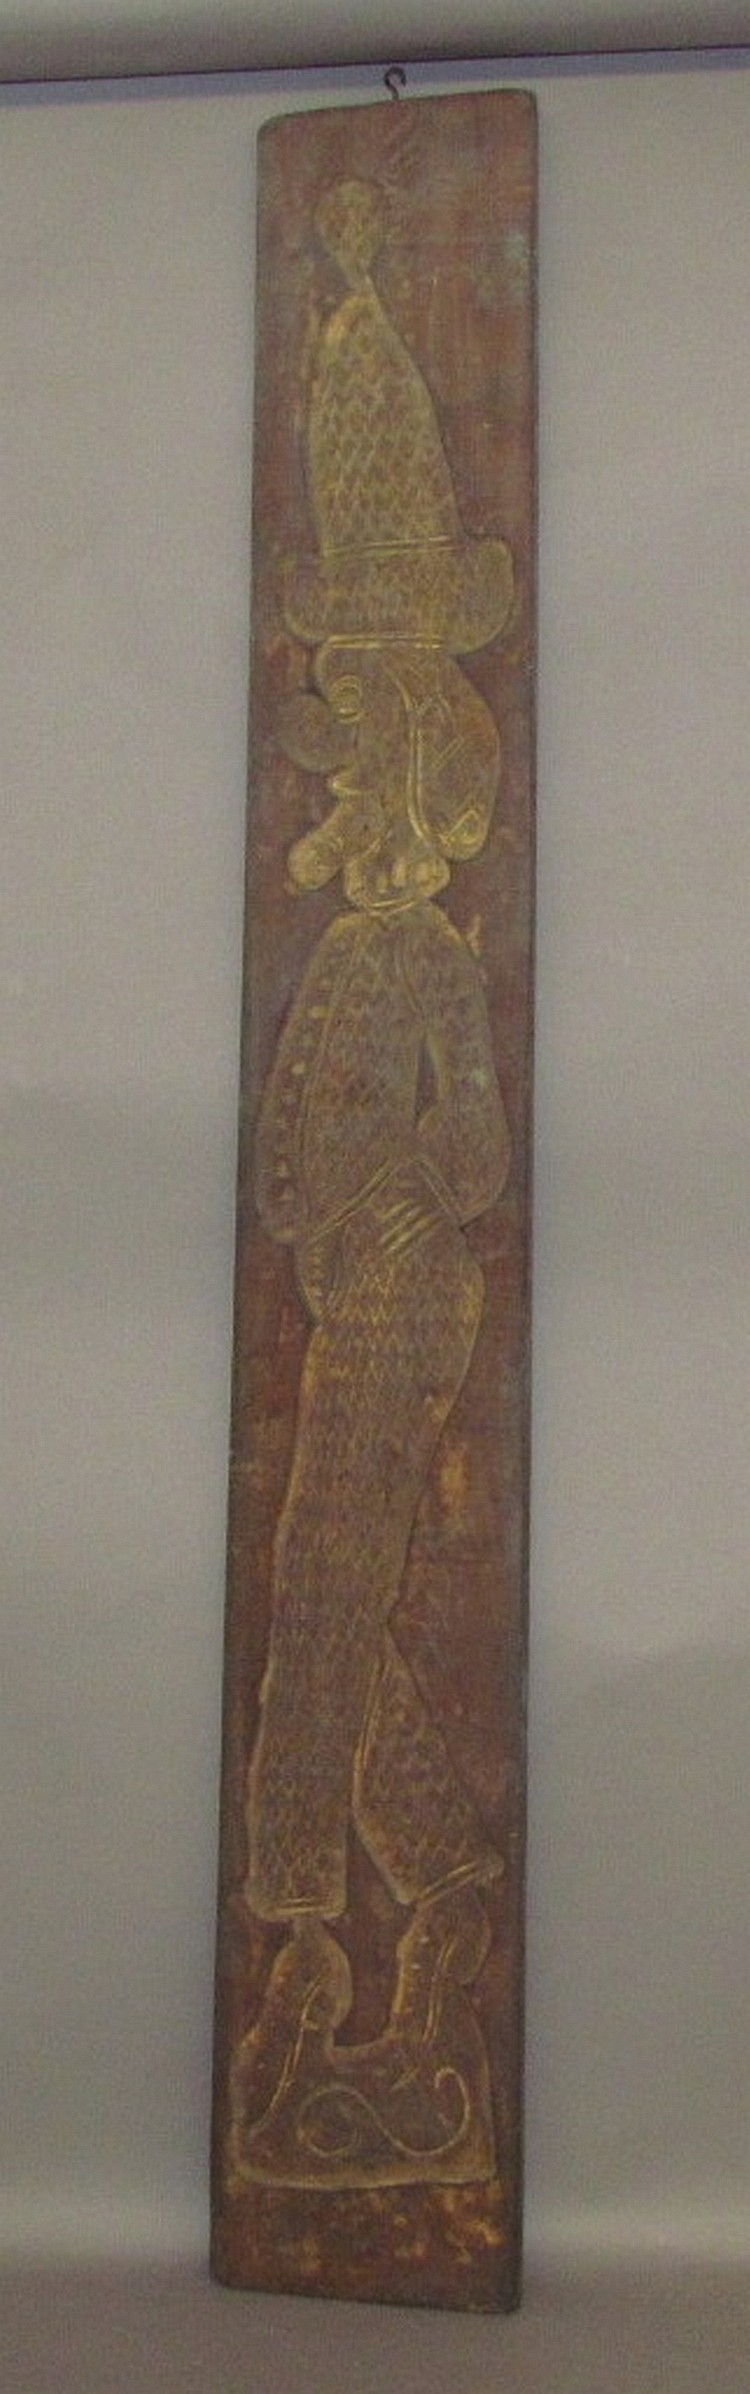 Lot 360: Hessian soldier wooden cookie mold